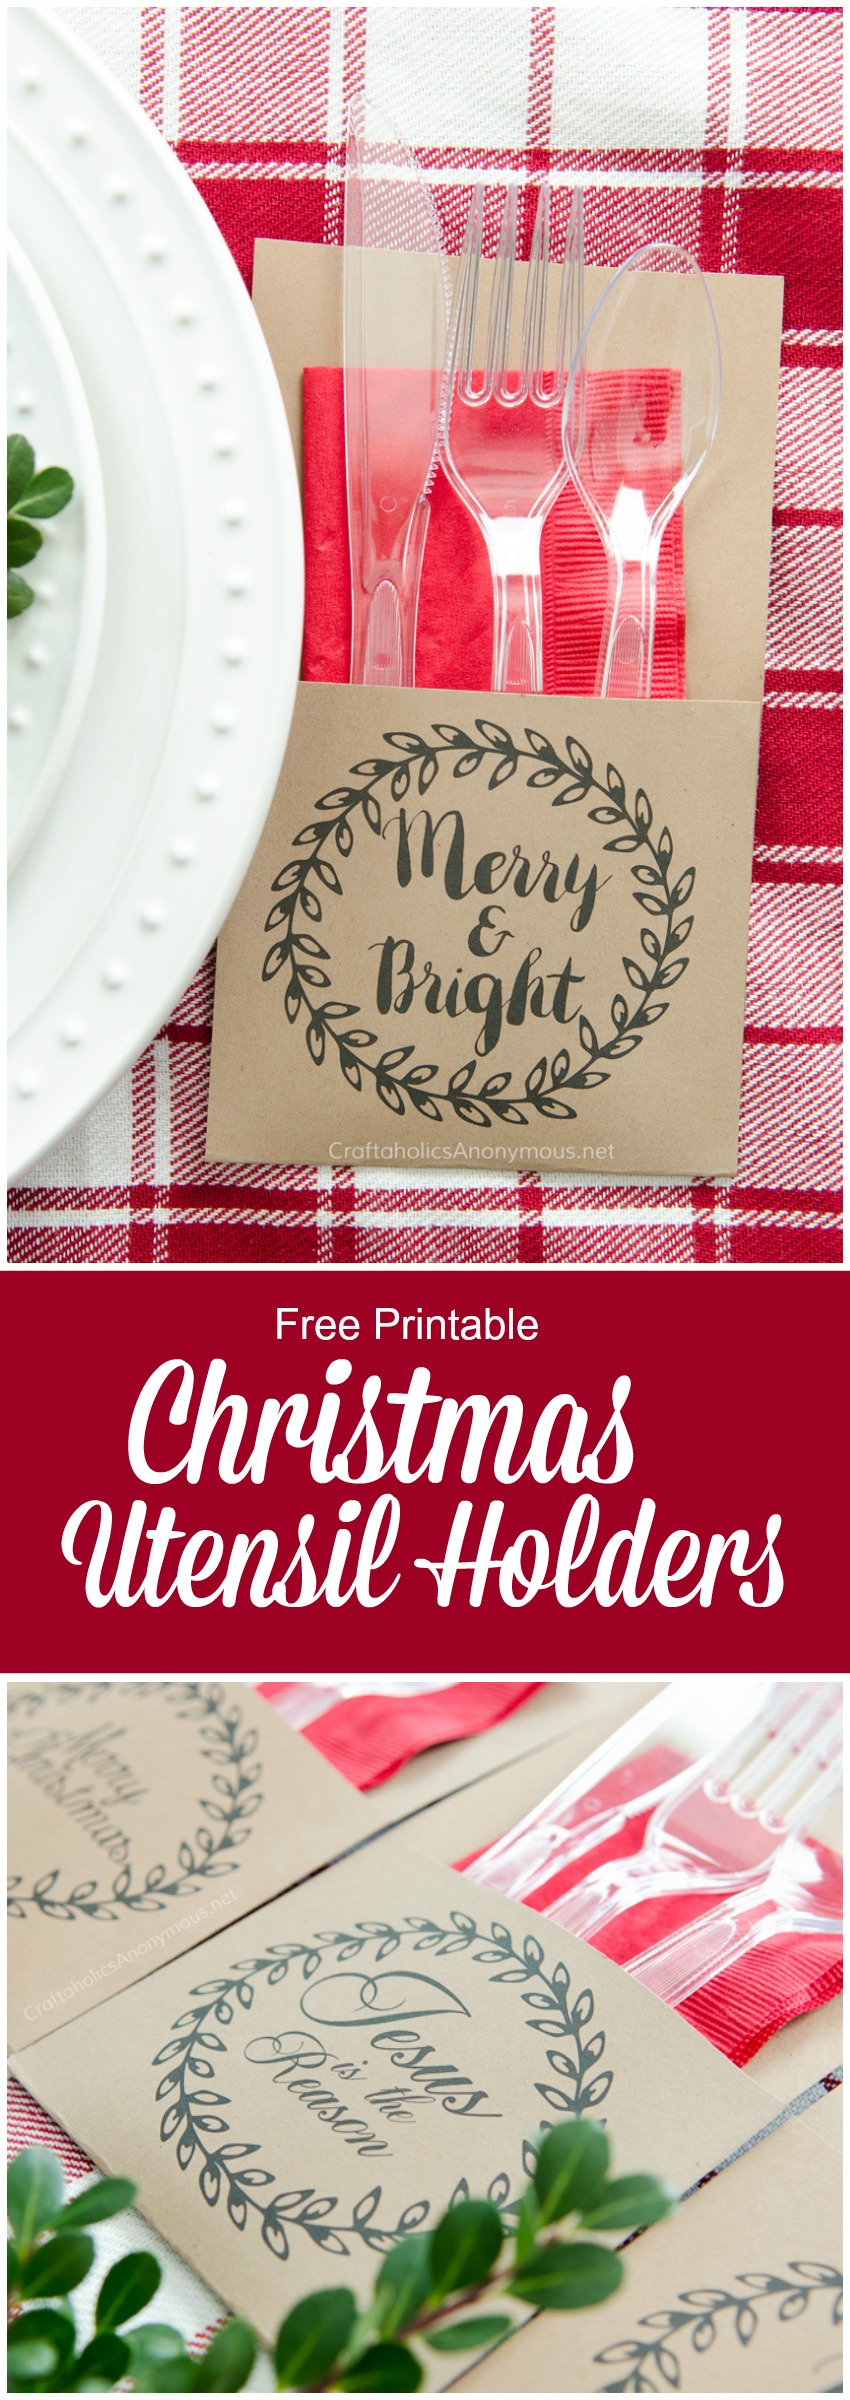 Utensil Holder printable for Christmas. Print off and glue together. So easy! Perfect for holiday parties!